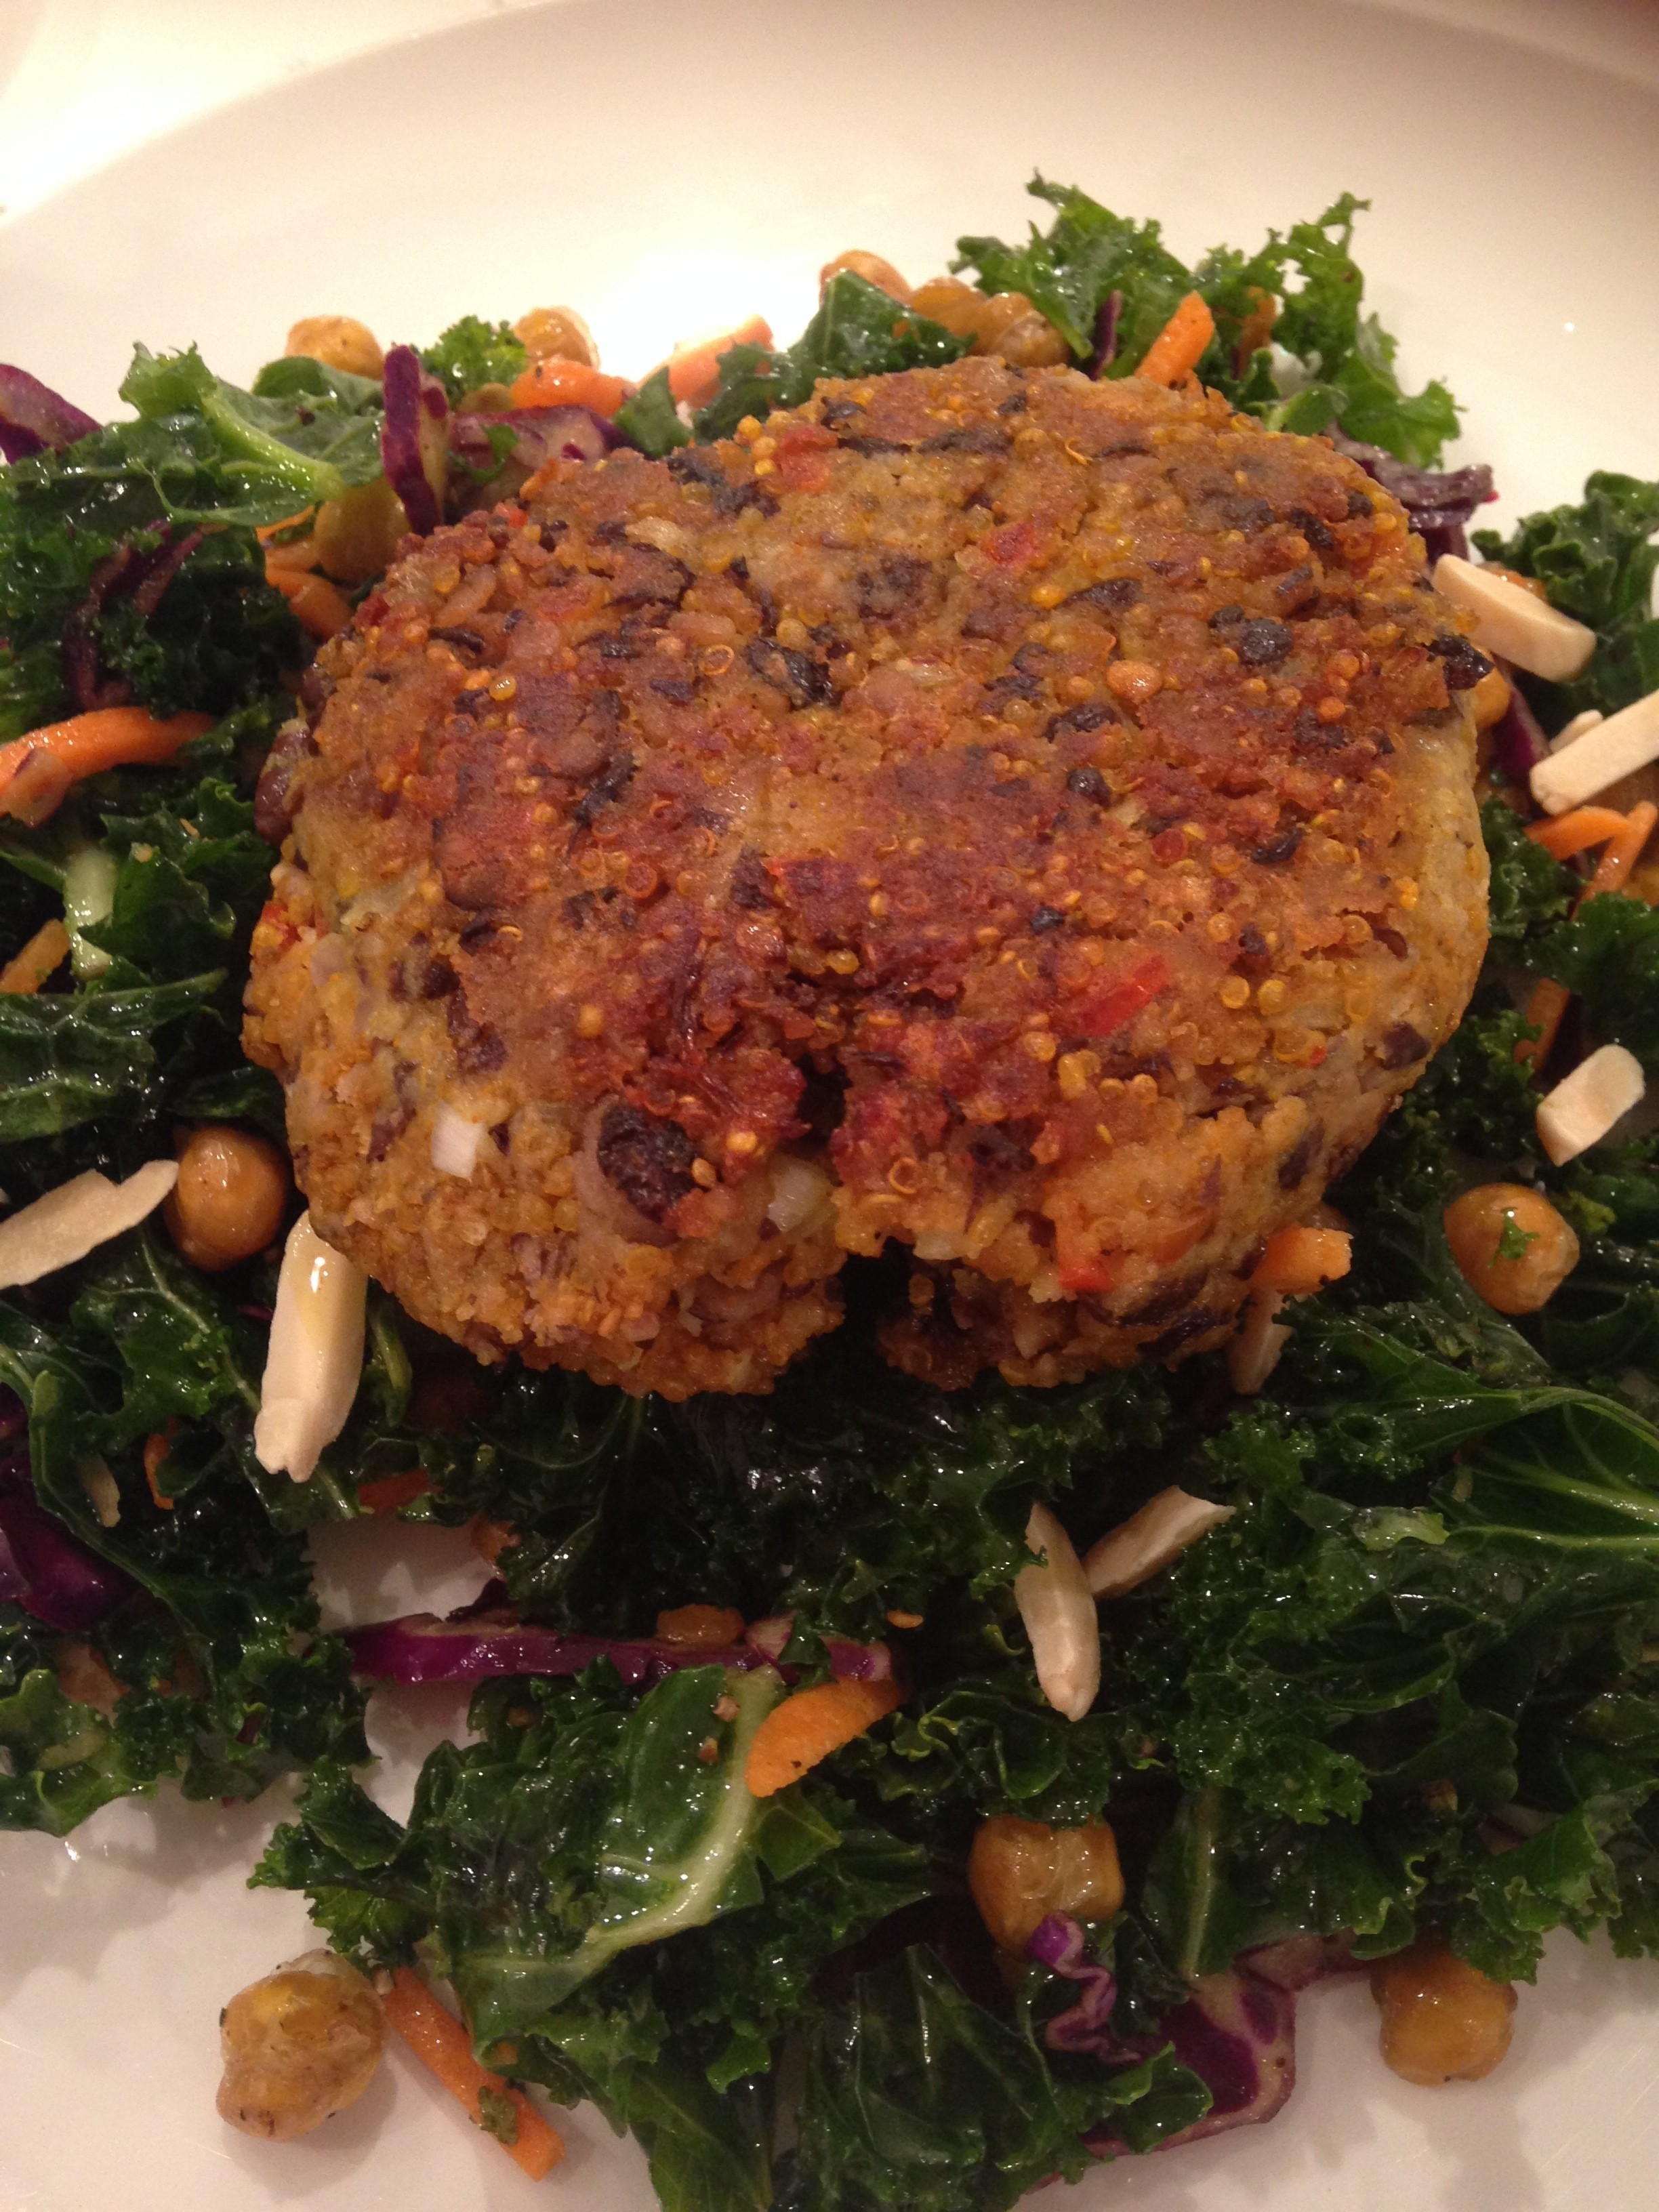 Spicy Black Bean Quinoa Burger on Baby Kale Salad with Lemon, Parmesan & Crispy Roasted Chickpeas